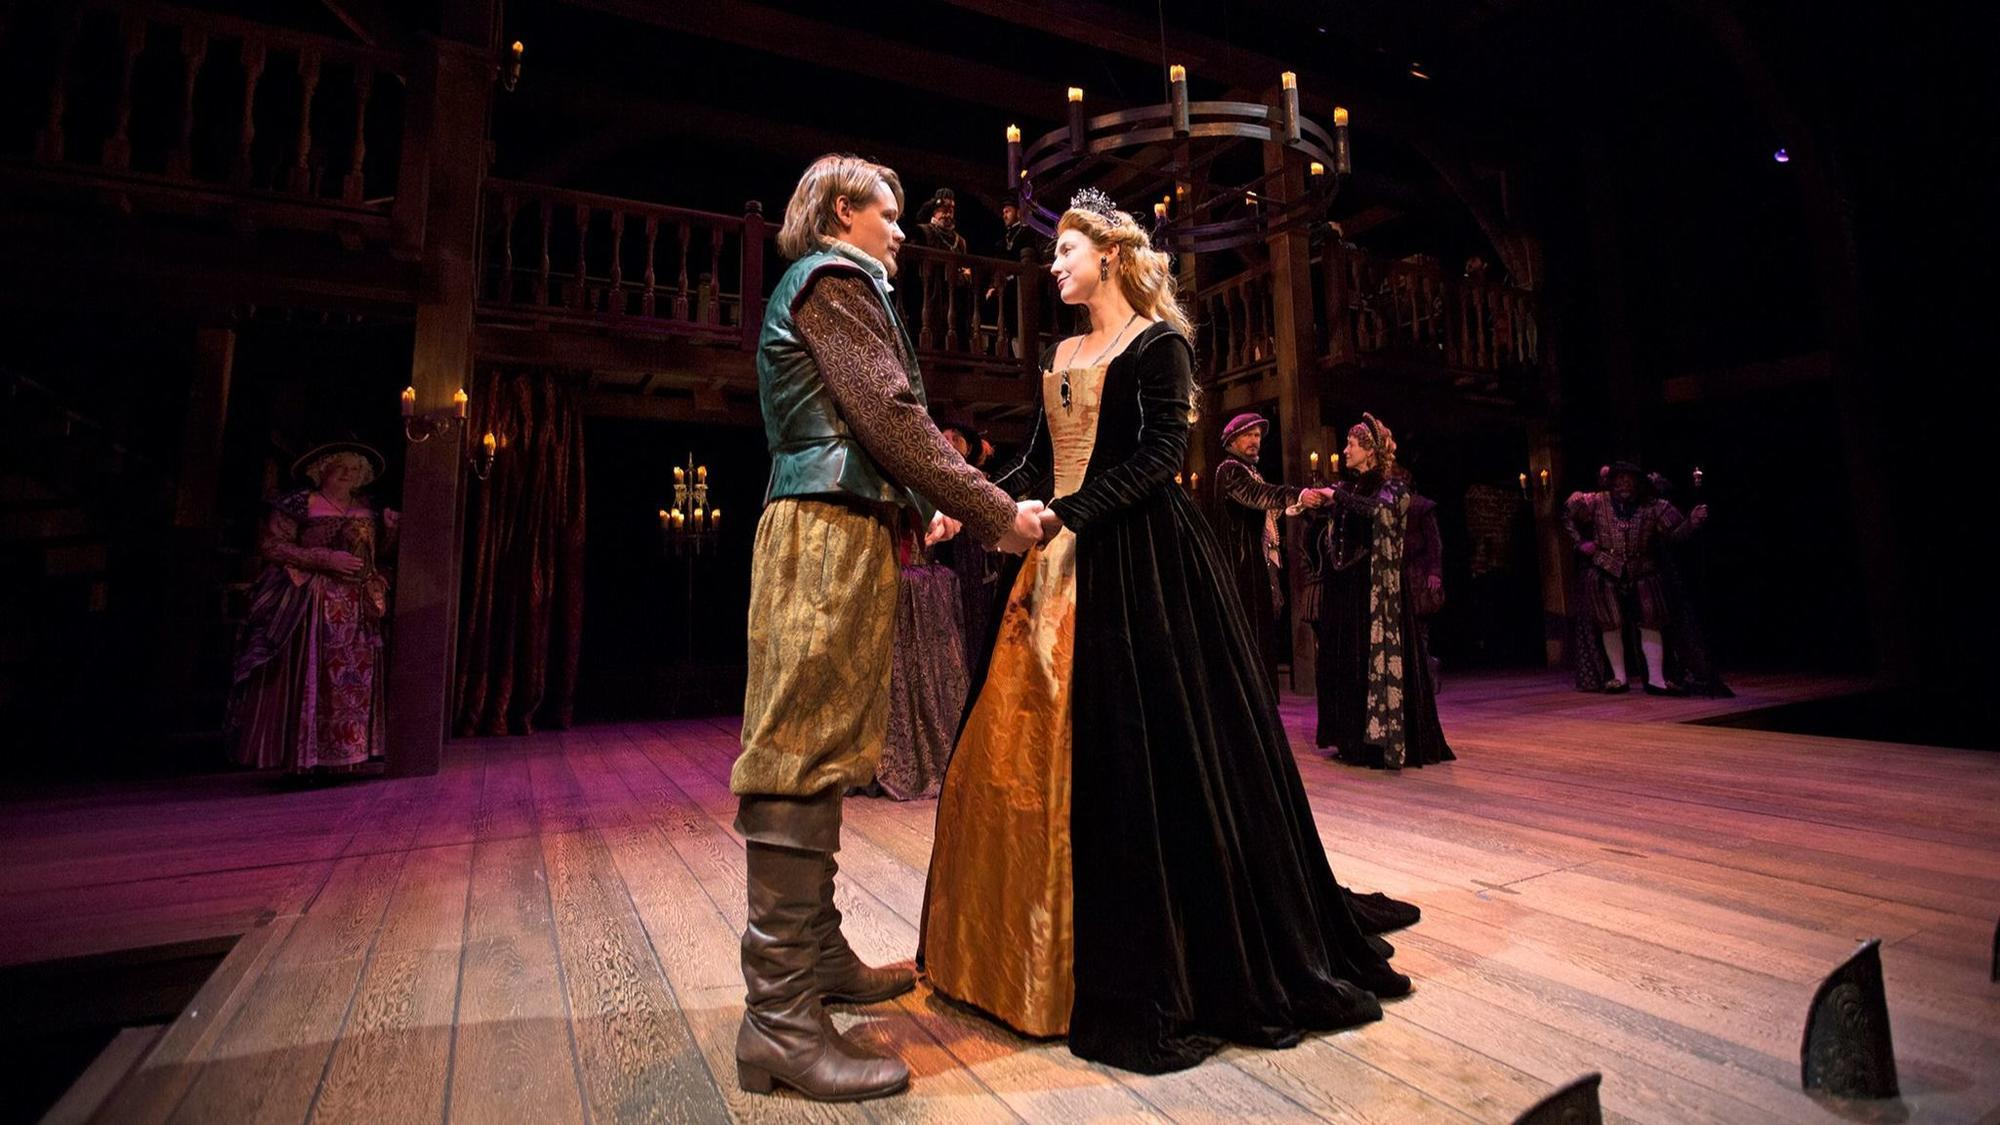 critical criticism essay review shakespeare shrew taming theater Shakespeare's ts taming of the shrew and the tradition of the journal publishes review articles of shakespeare's taming of the shrew is extremely.